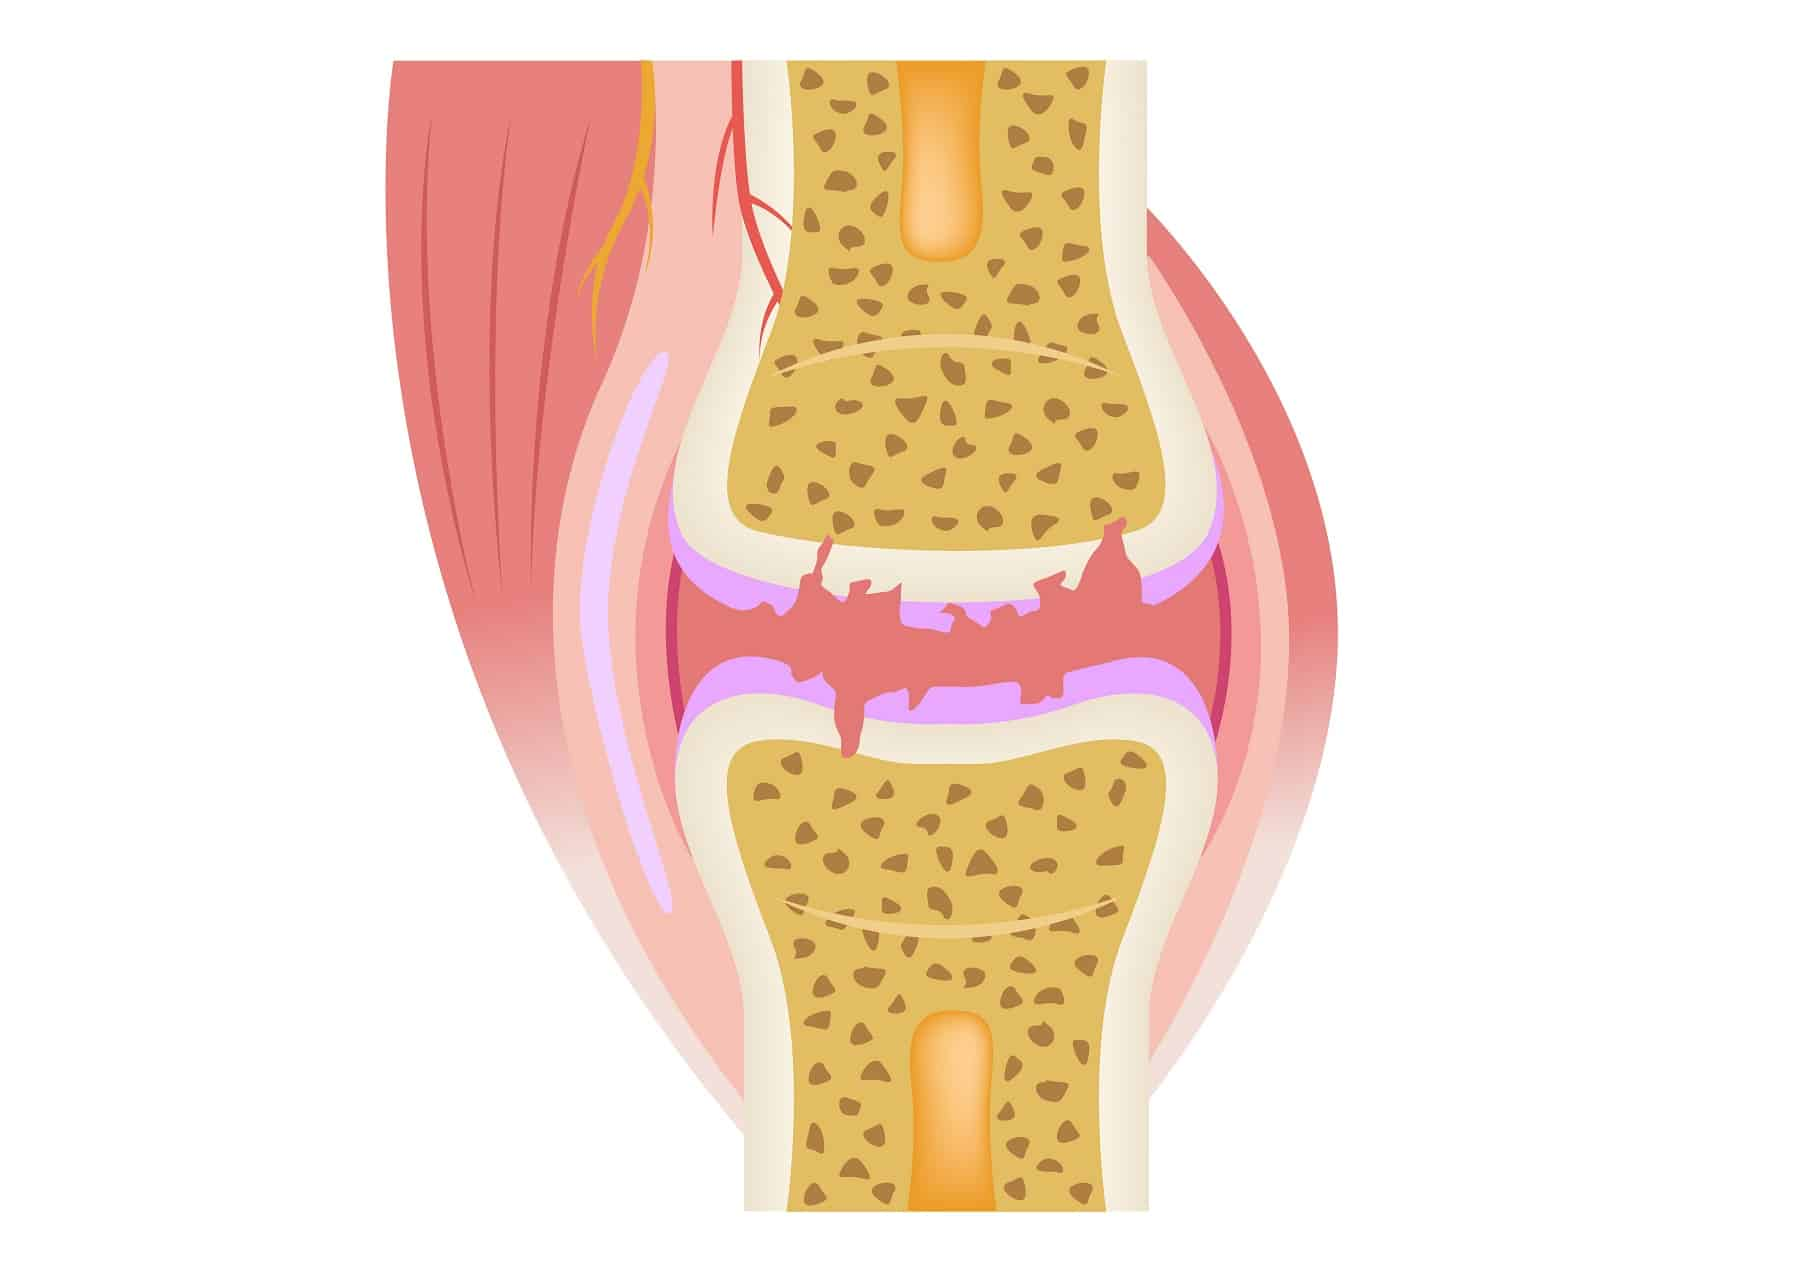 3 Natural Ways to Improve Symptoms From Painful Osteoarthritis